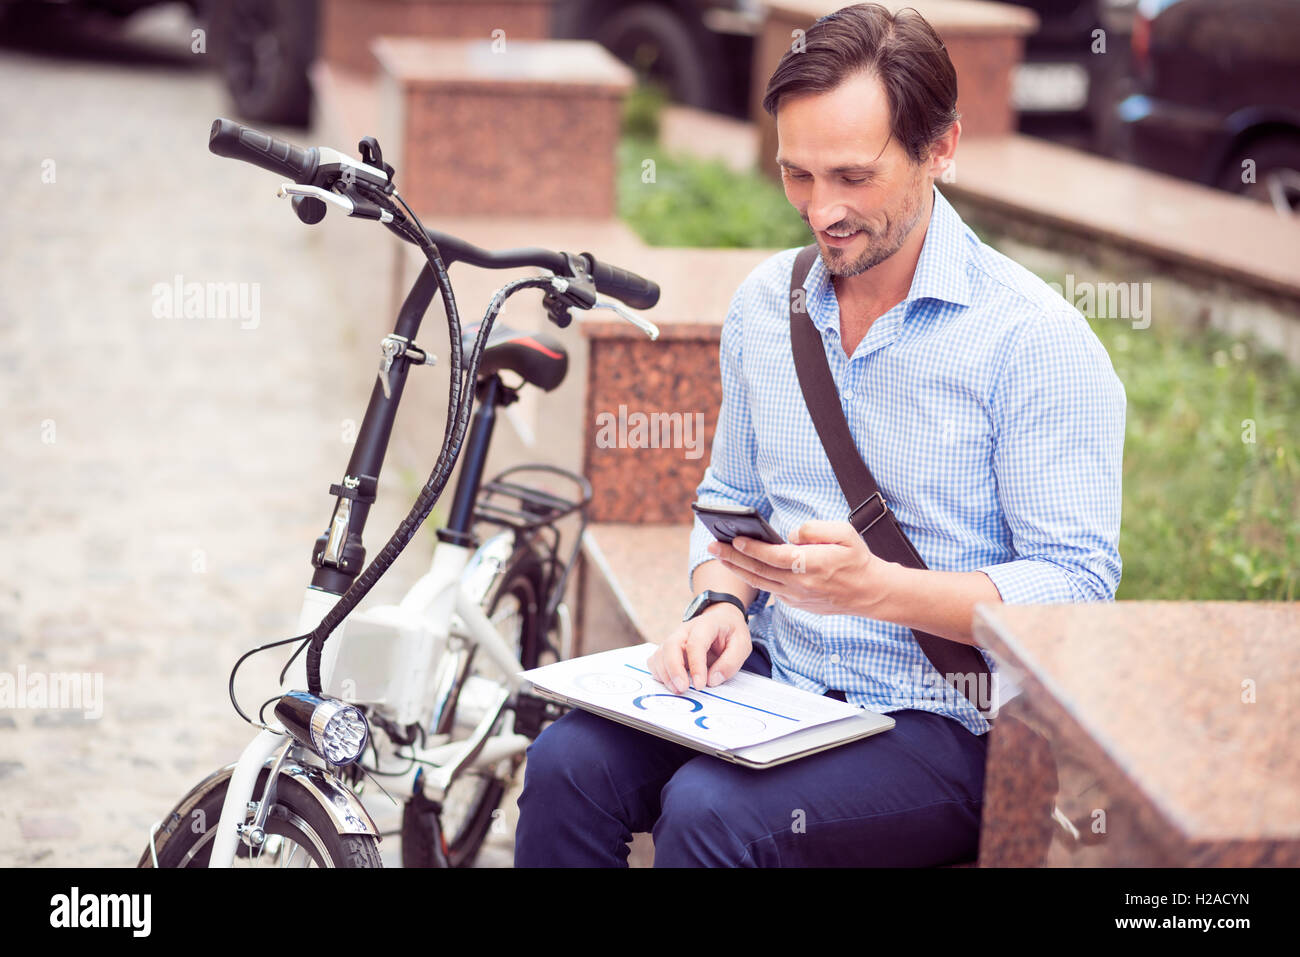 Pleasant smiling man sitting in the street - Stock Image